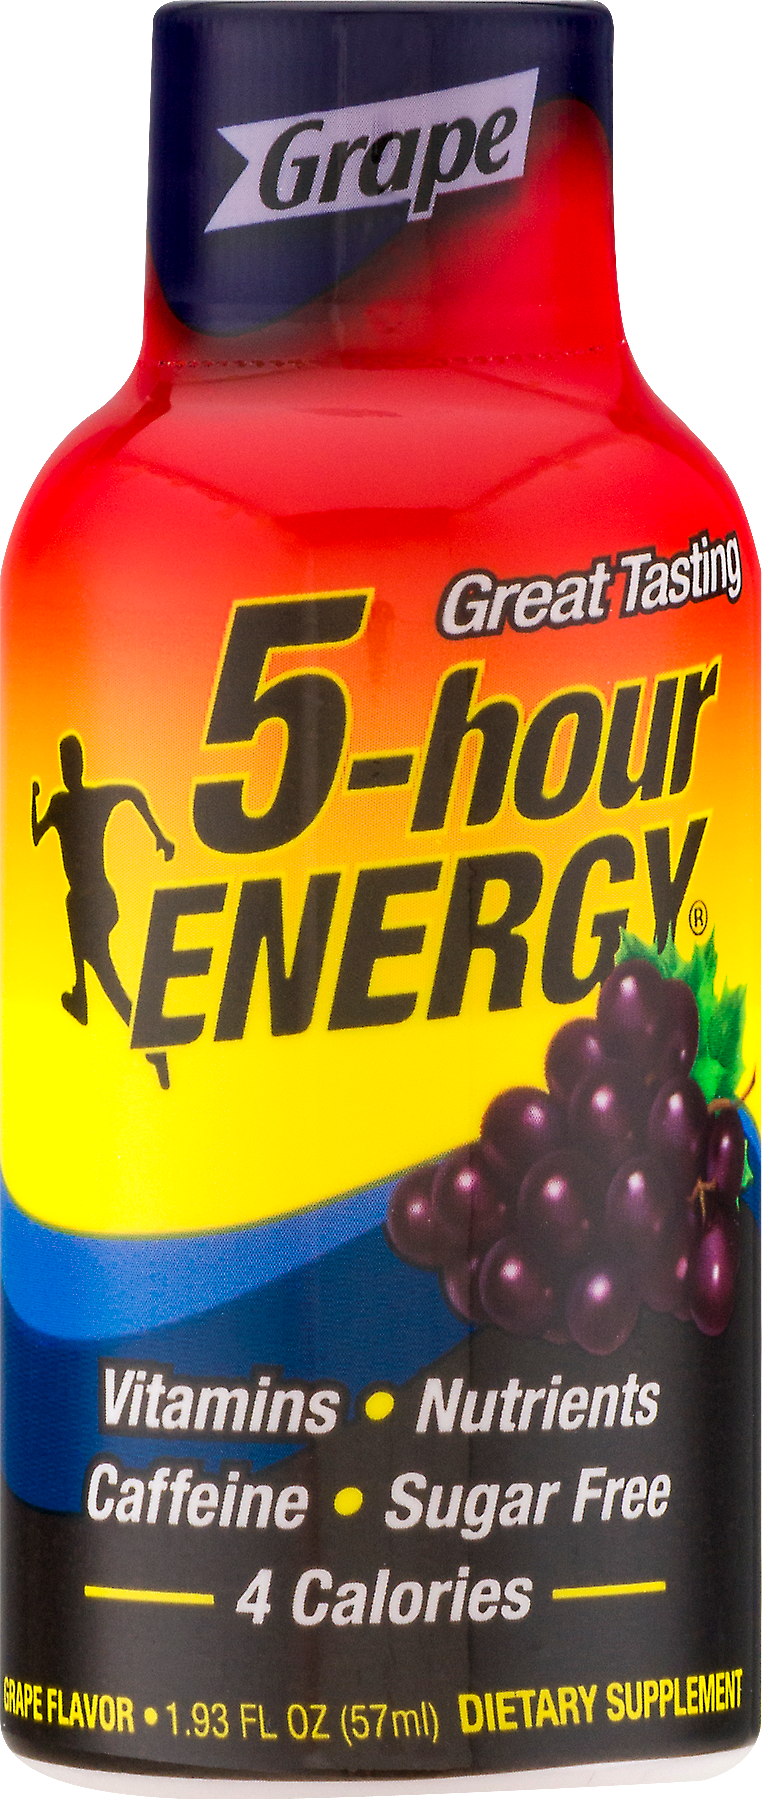 5-Hour Energy Grape, Single Bottle